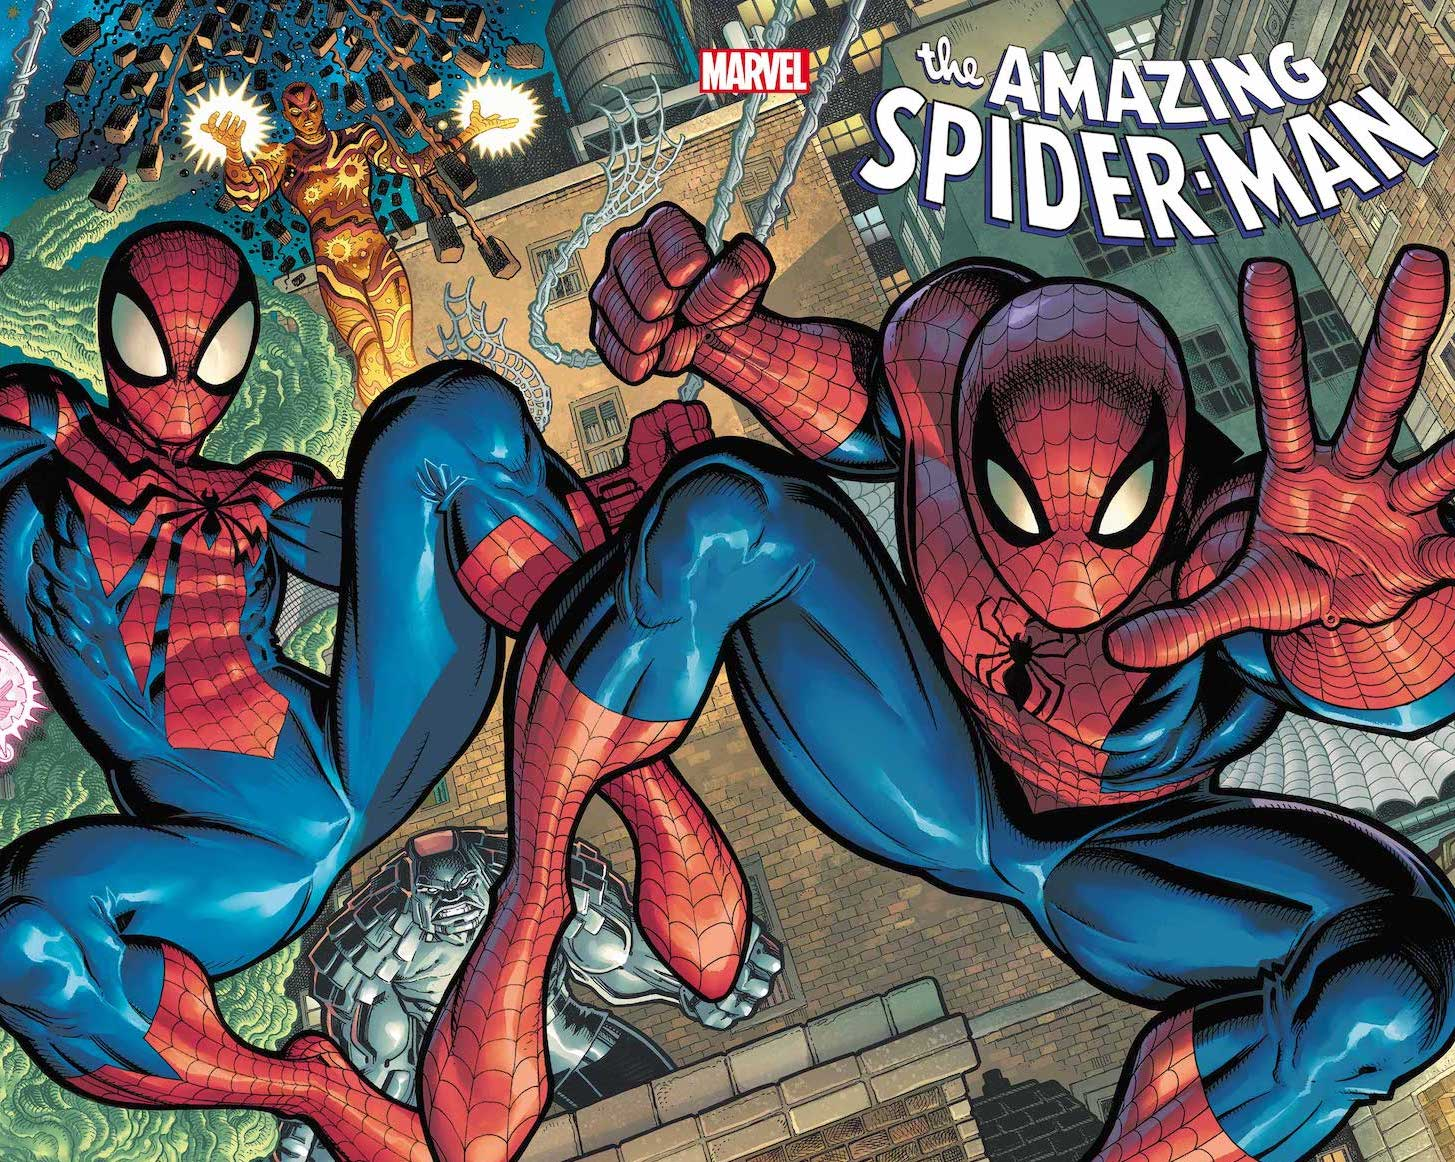 'Amazing Spider-Man' #75 offers an exciting new direction for Spidey